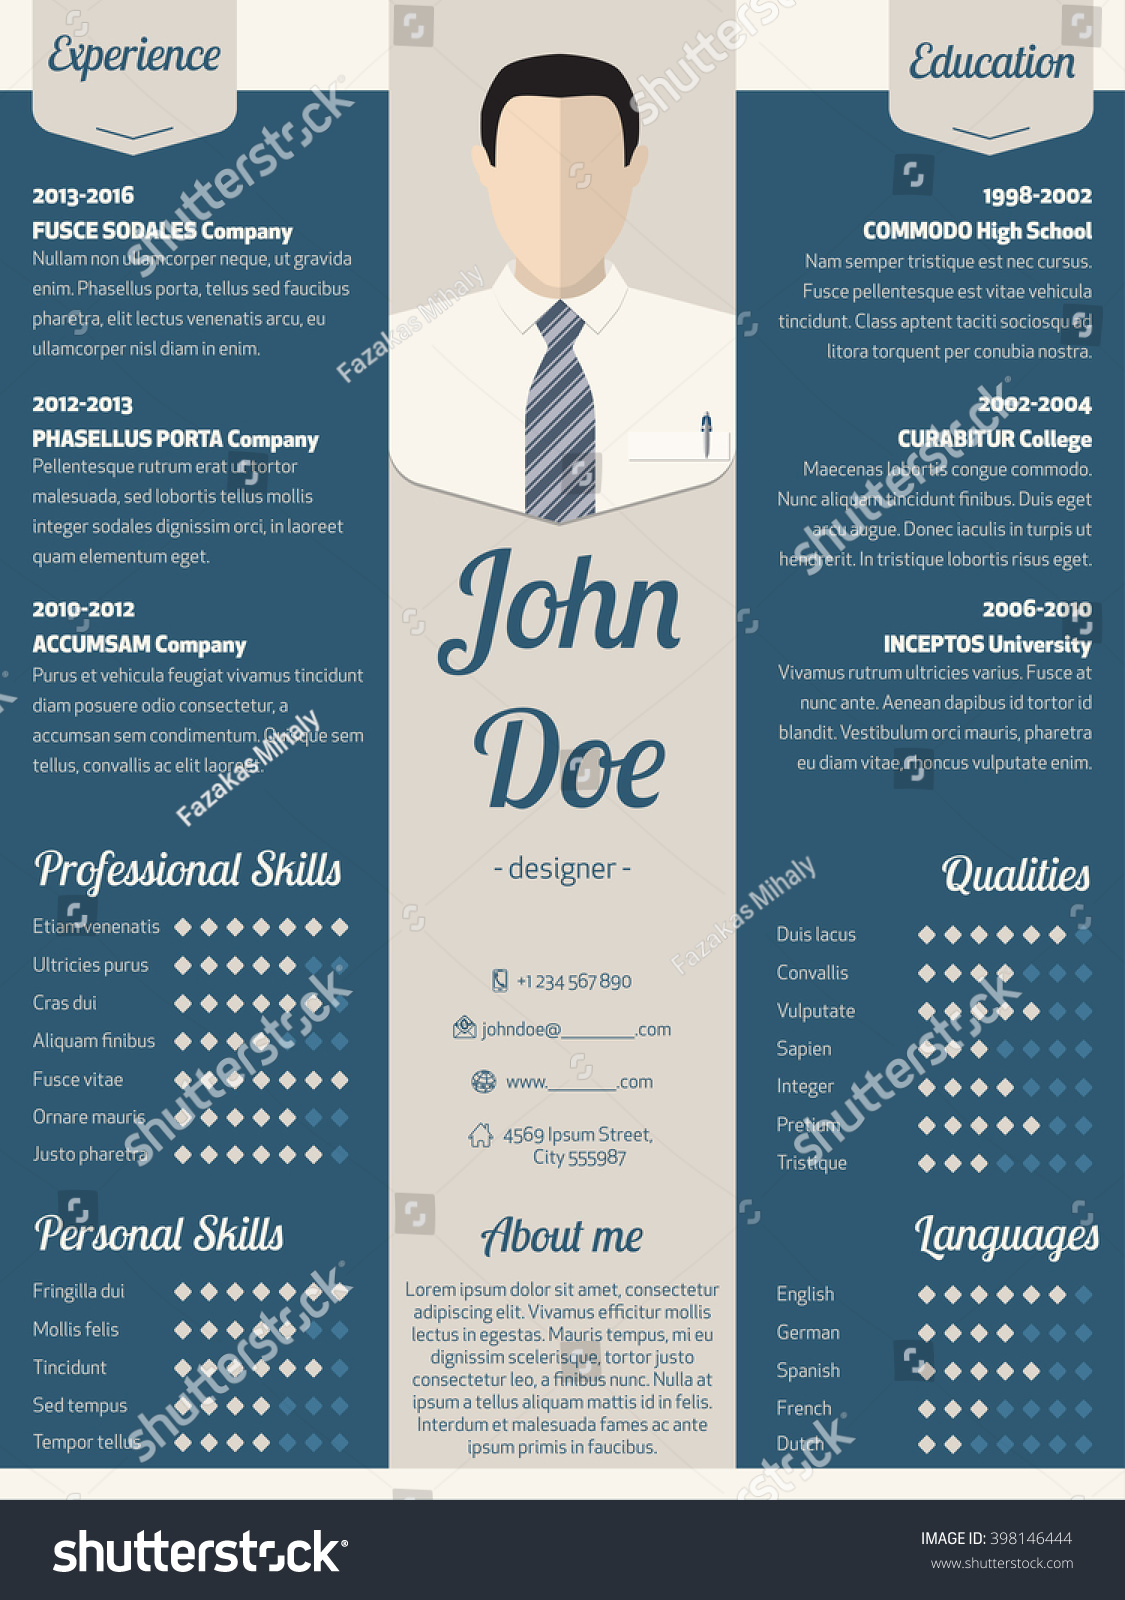 new modern resume cv curriculum vitae stock vector